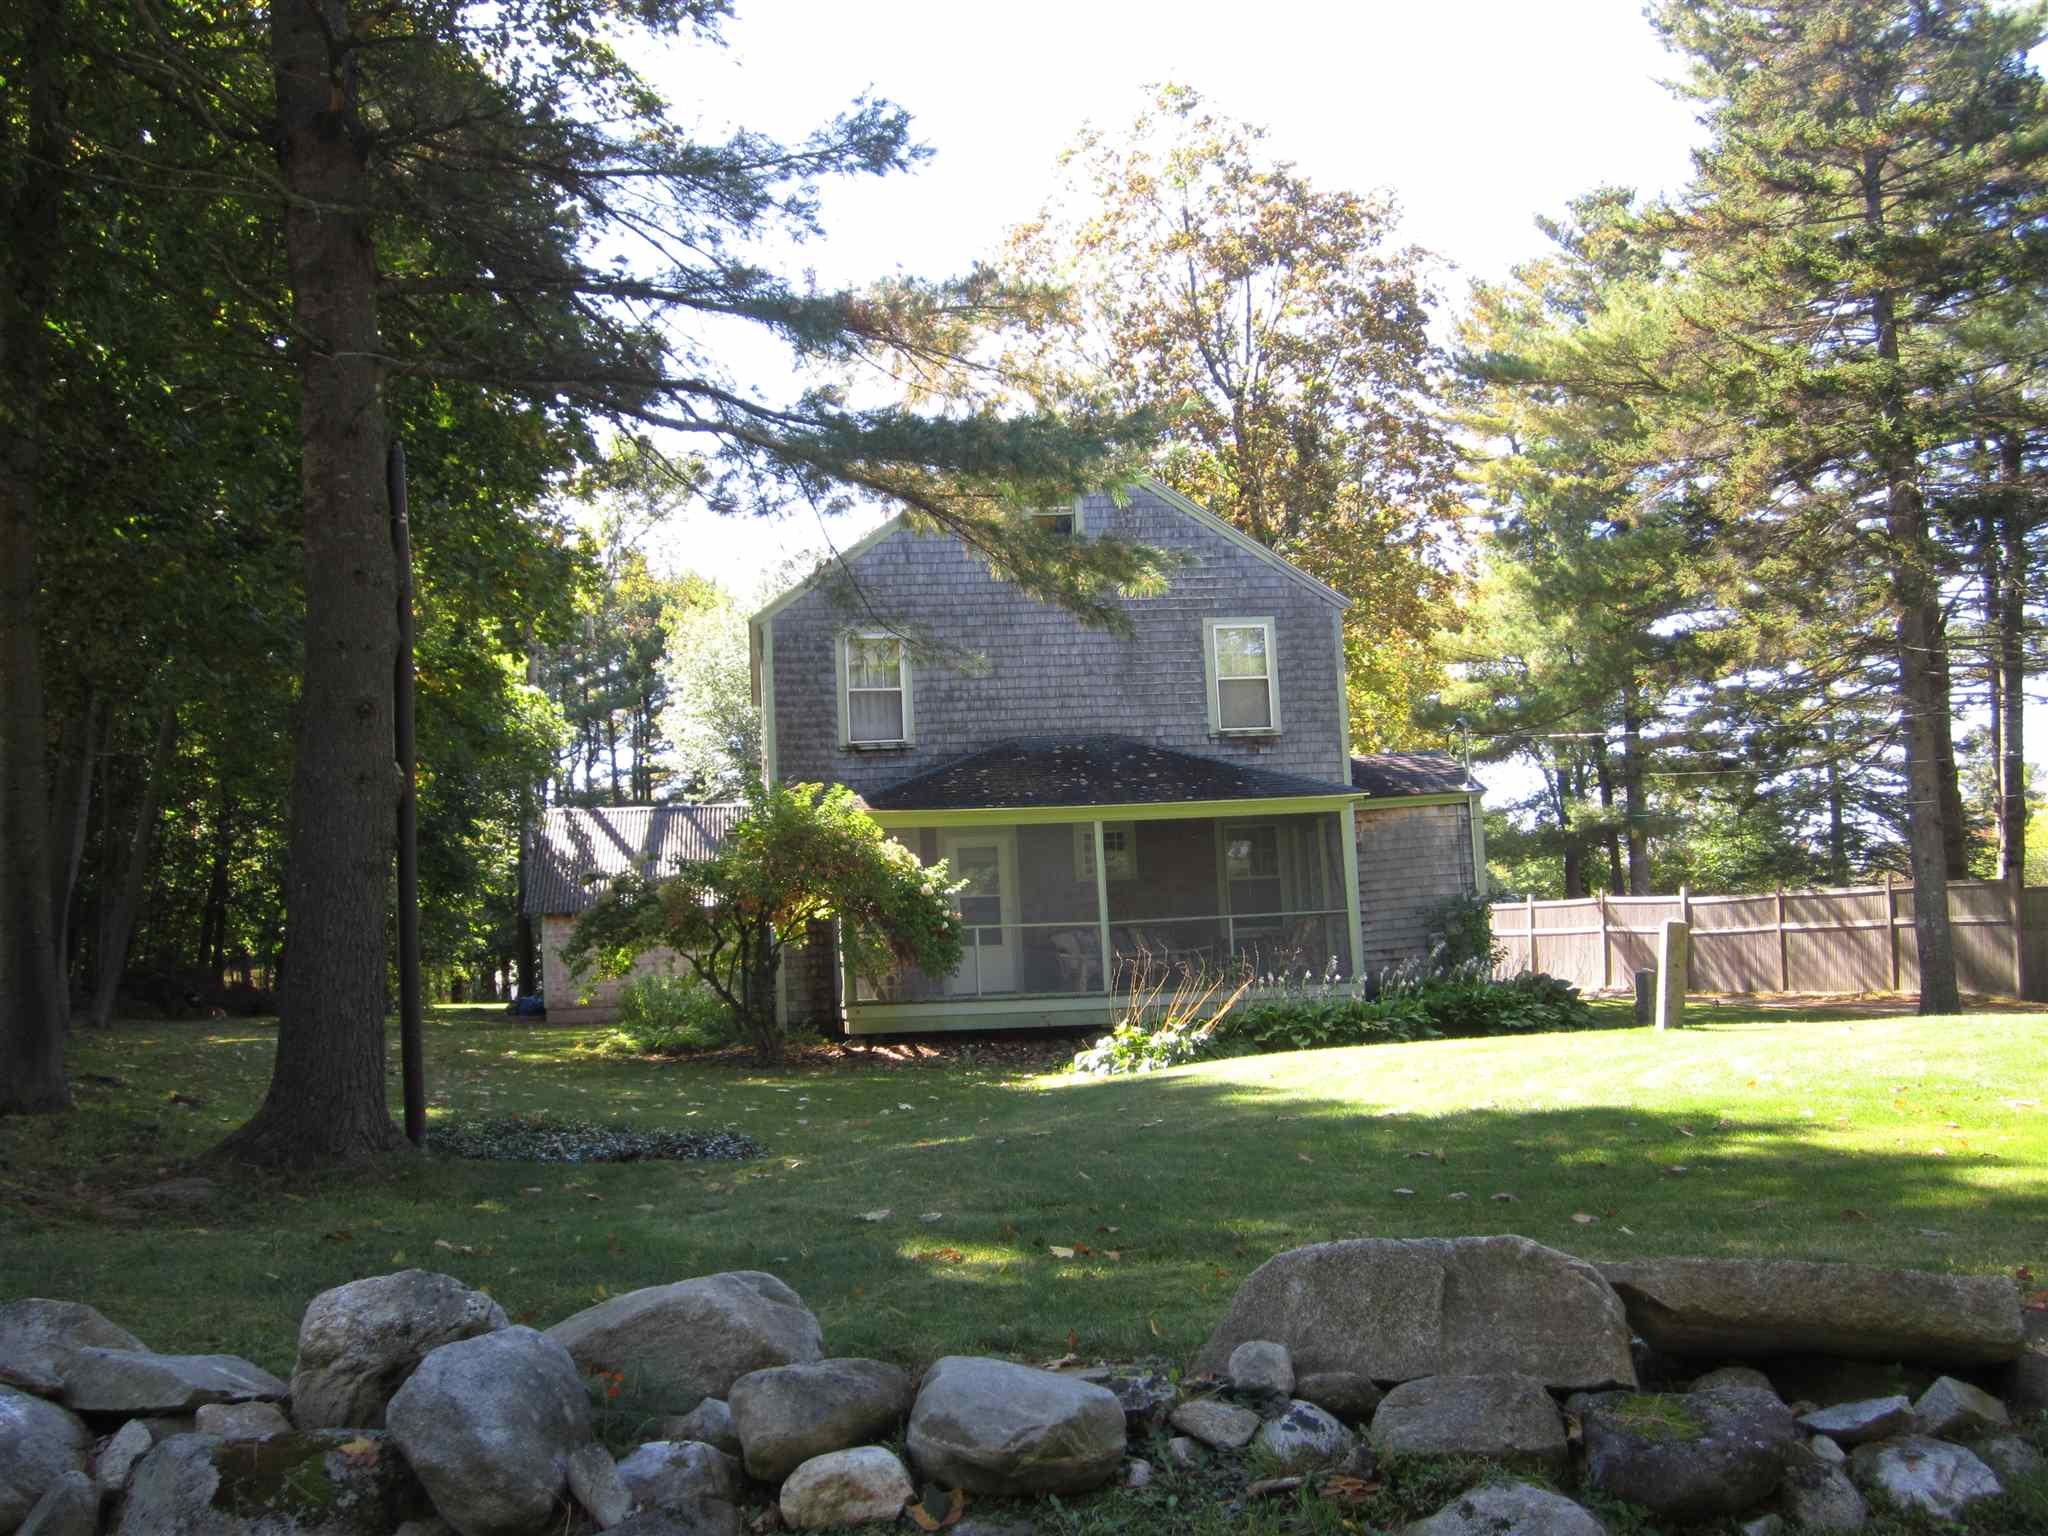 MLS 4779578: 371 Little Sunapee Road, New London NH